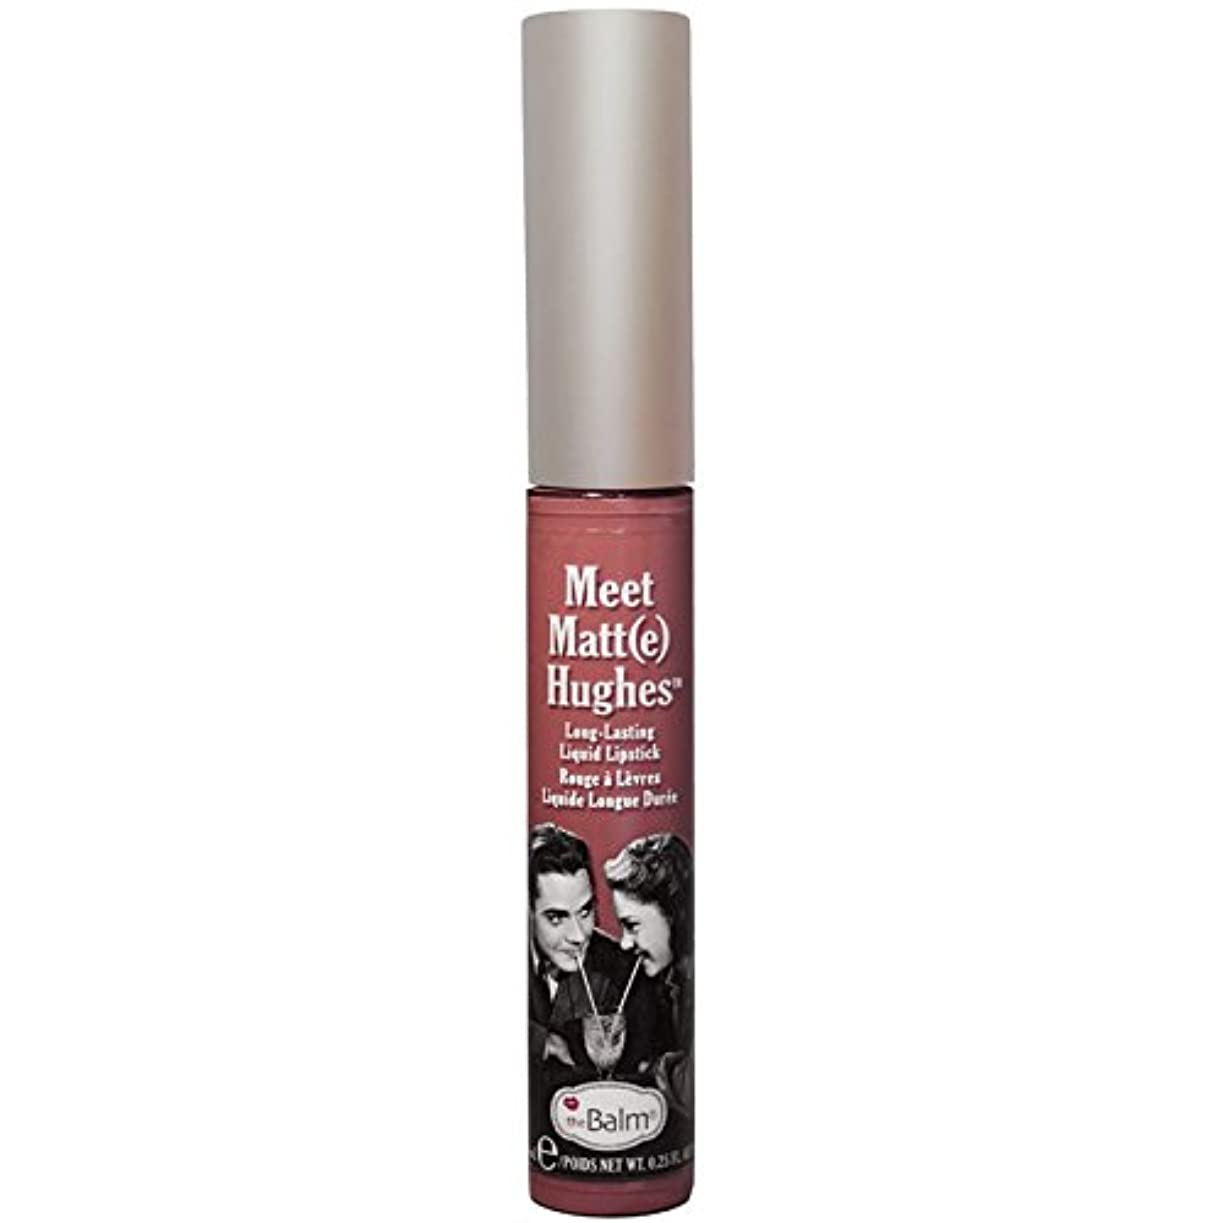 一方、去る本を読むtheBalm - Meet Matt(e) Hughes Long-Lasting Liquid Lipstick Sincere [並行輸入品]